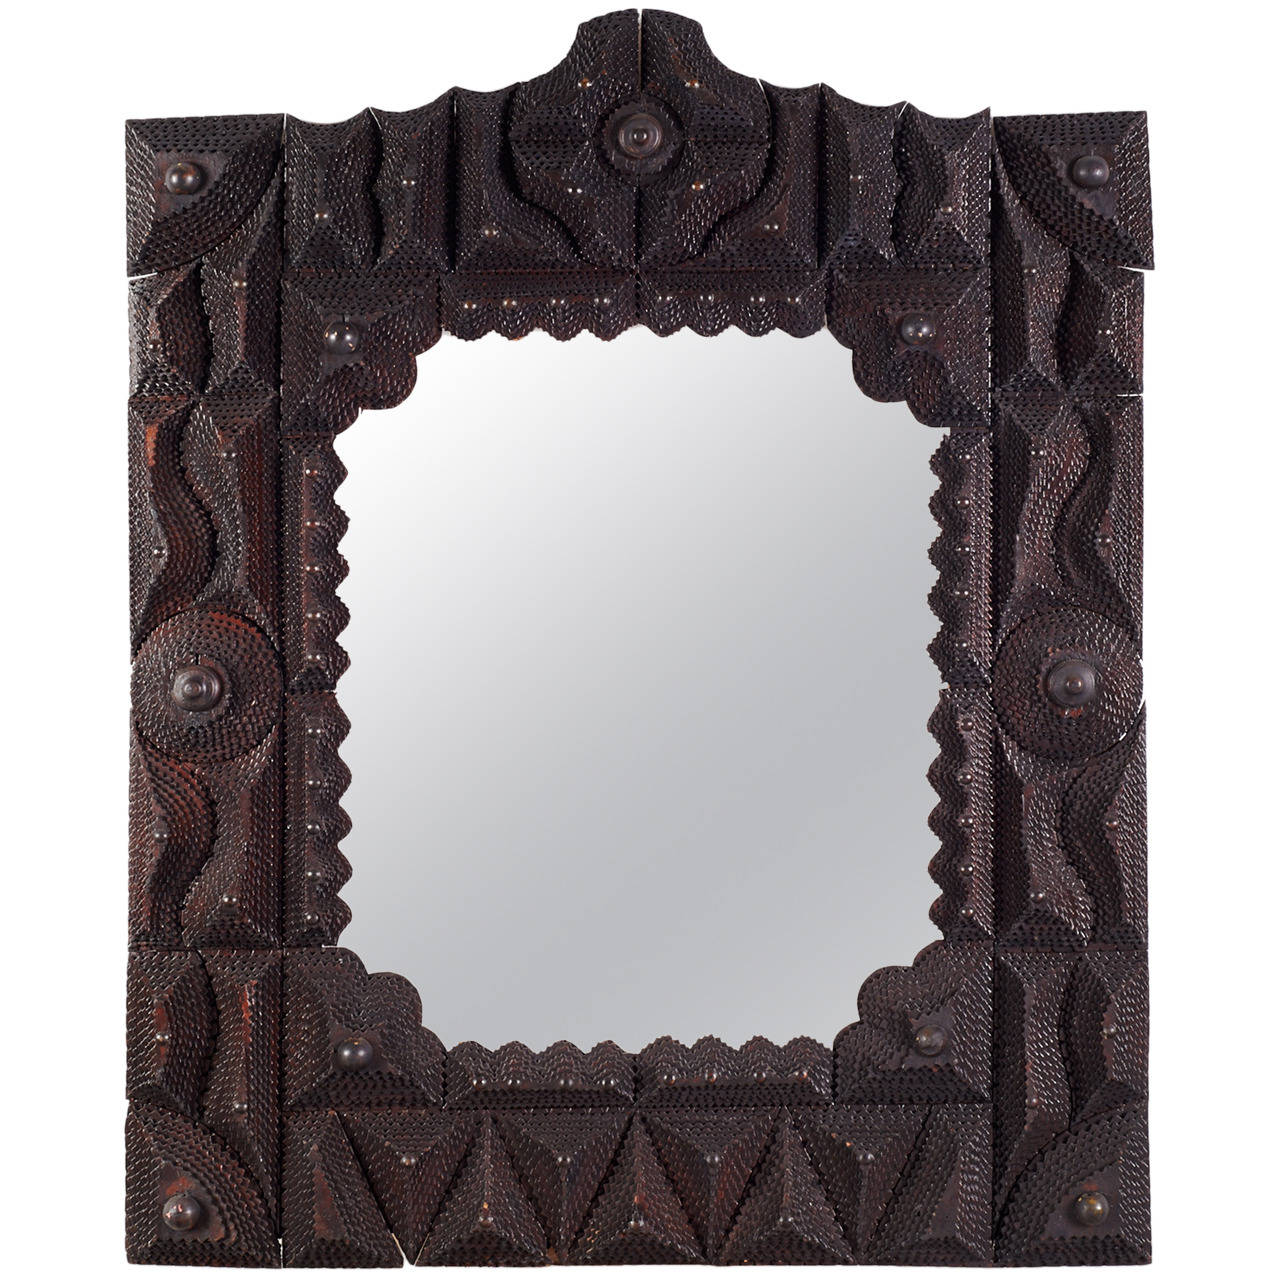 Large Early 20th Century American Tramp Art Frame at 1stdibs